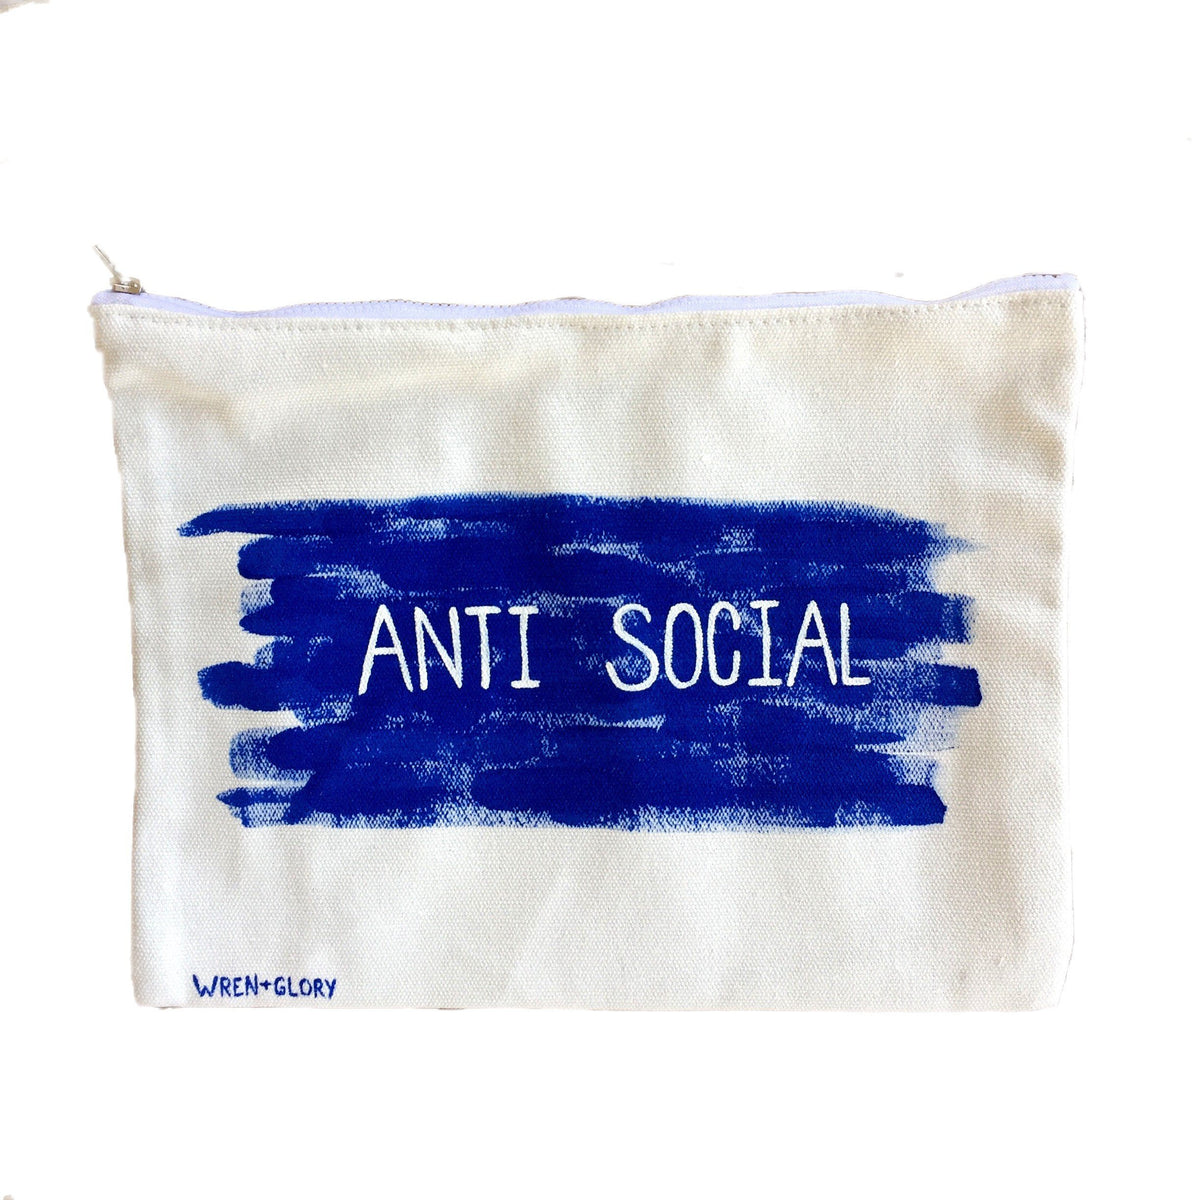 'ANTI SOCIAL' PAINTED POUCH